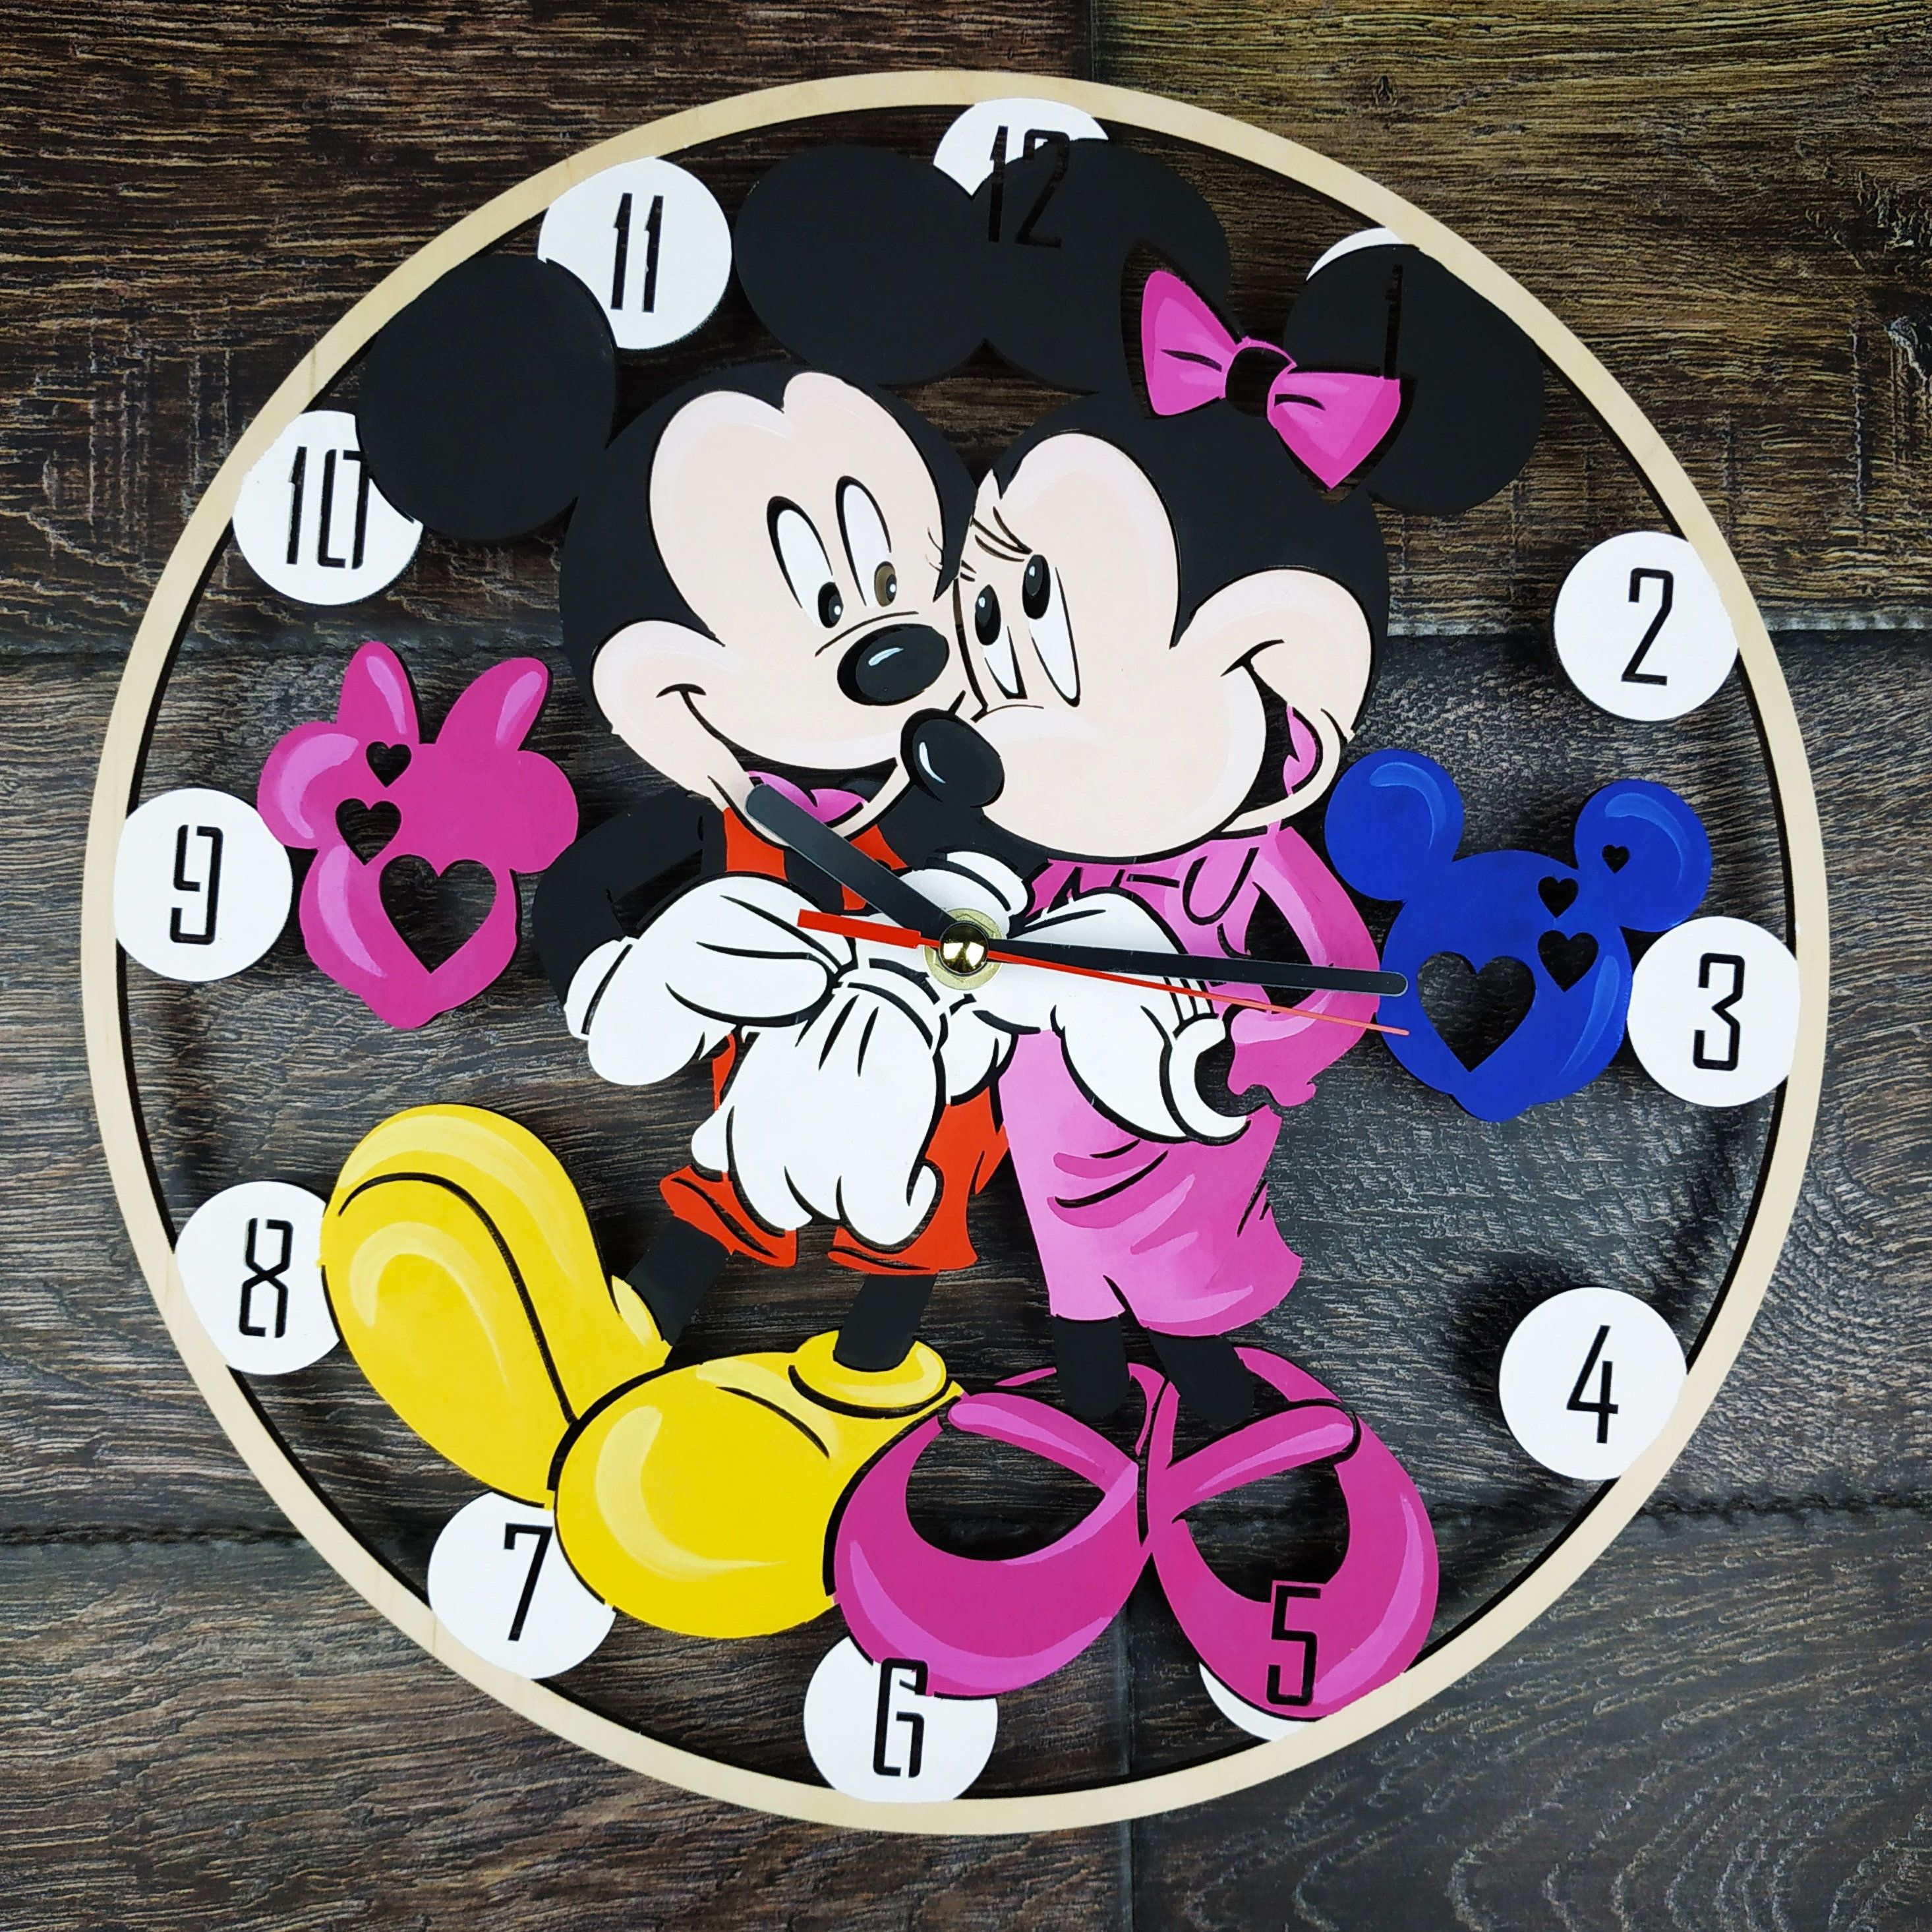 Mickey Minnie Mouse Wall Clock Wood Decor Art Gifts Woman Girl Kids Friend Home Room Bedroom Kitchen Birt Wood Wall Clock Handmade Wall Clocks Clock For Kids